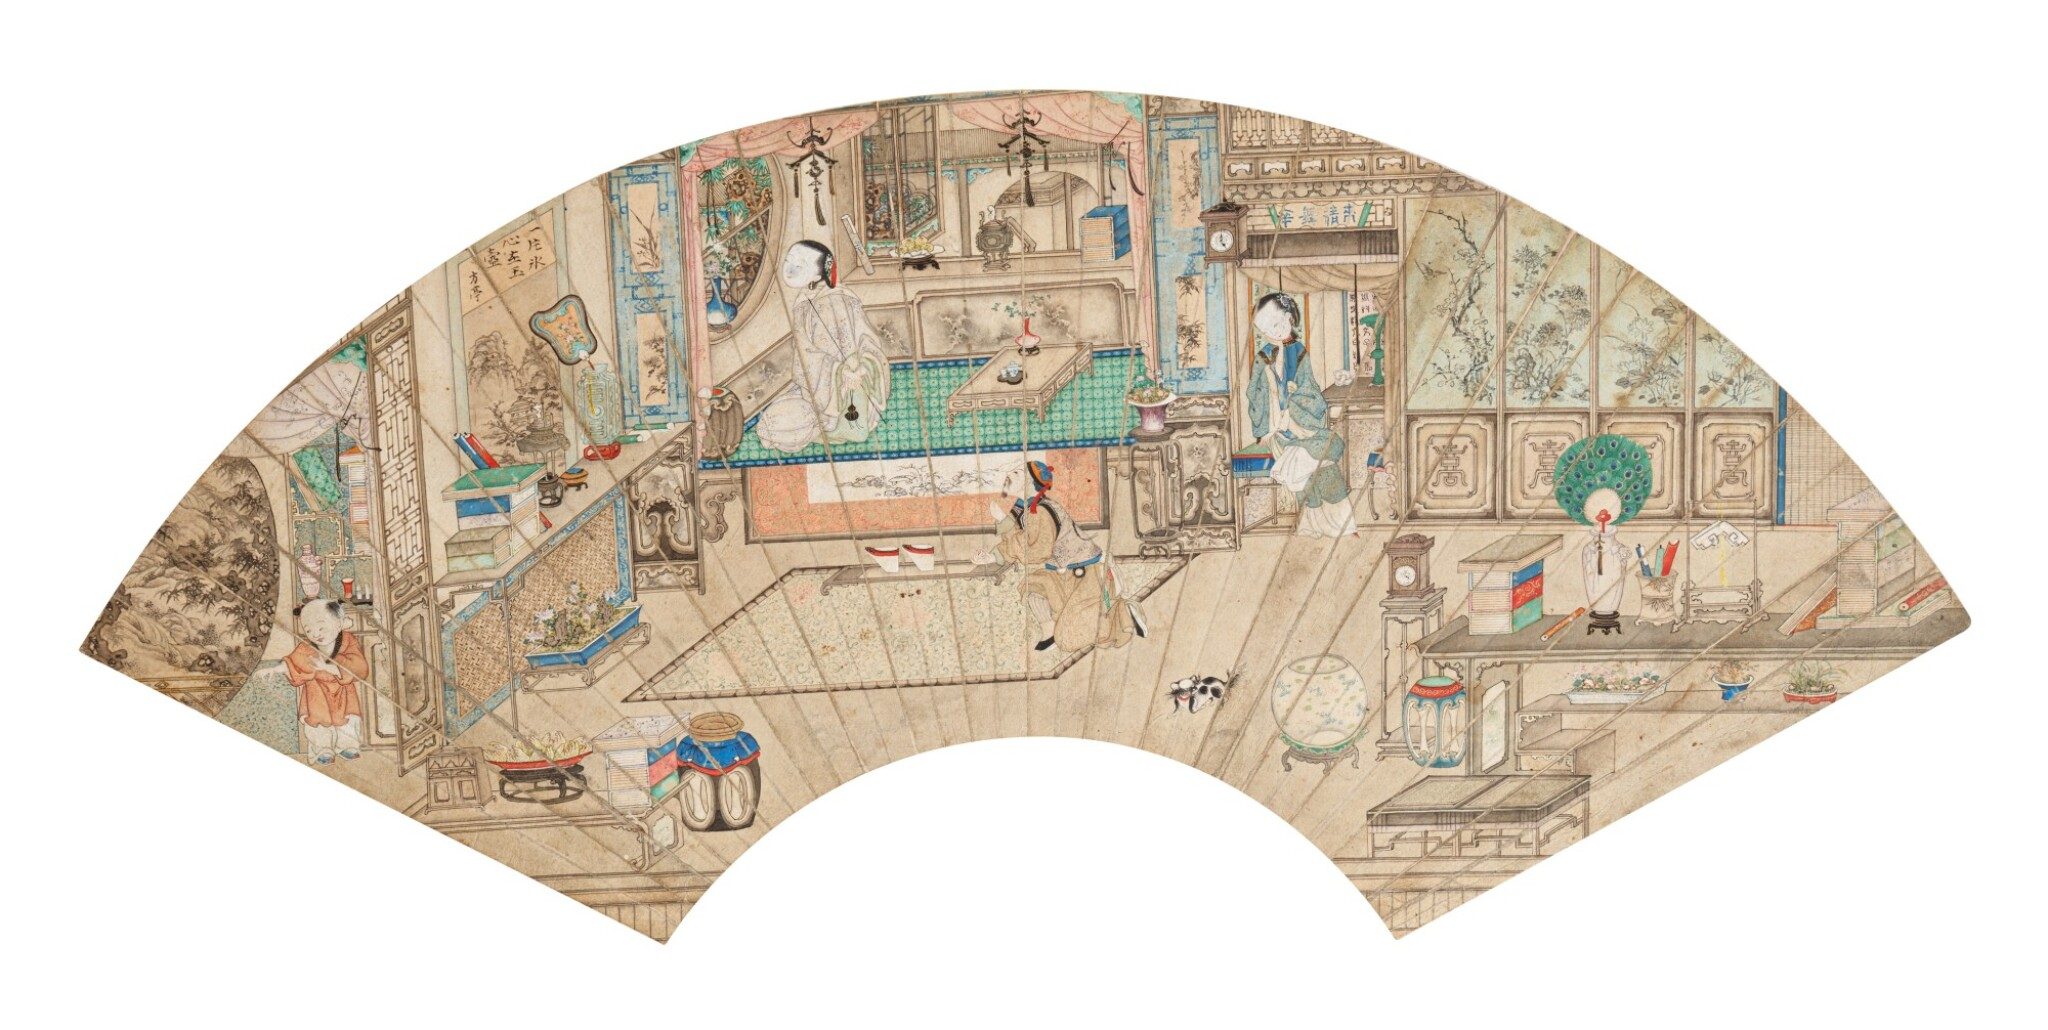 View 1 of Lot 116. Anonyme Scène d'intérieur avec personnages Dynastie Qing | 清 人物故事圖 | Anonymous, Interior scene with characters, ink and colour on paper, fan leaf, Qing Dynasty.